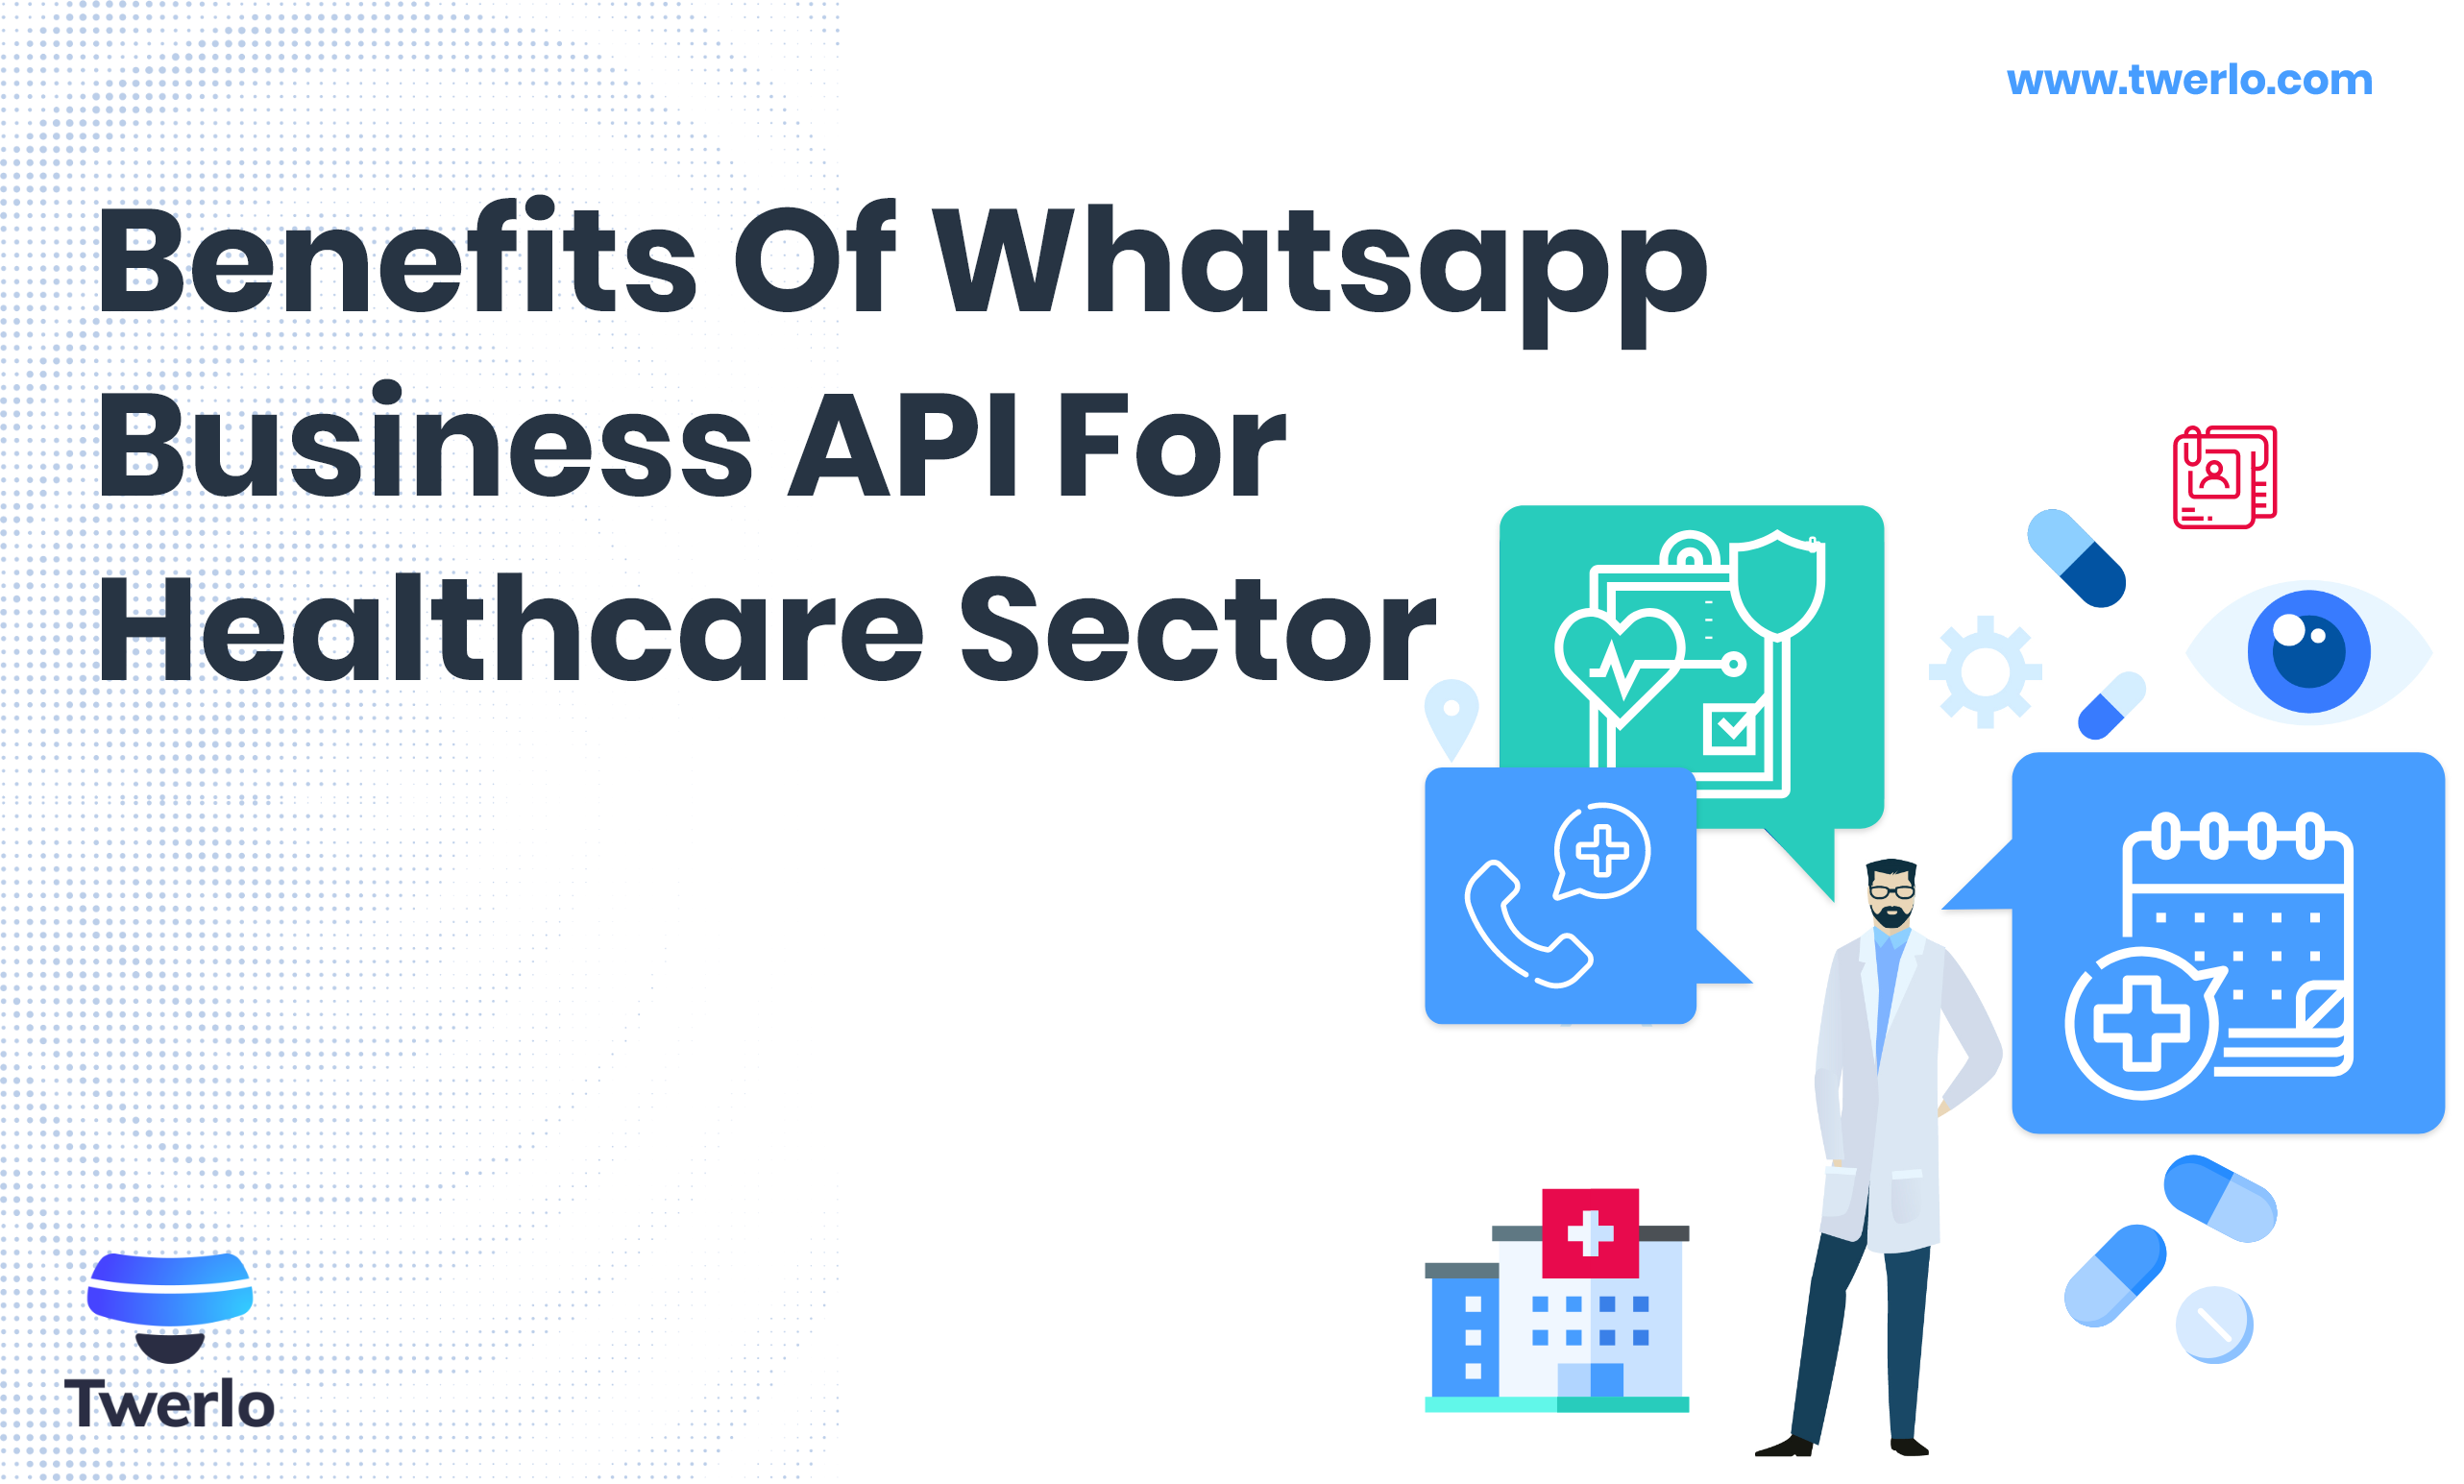 Benefits of WhatsApp Business API for healthcare sector